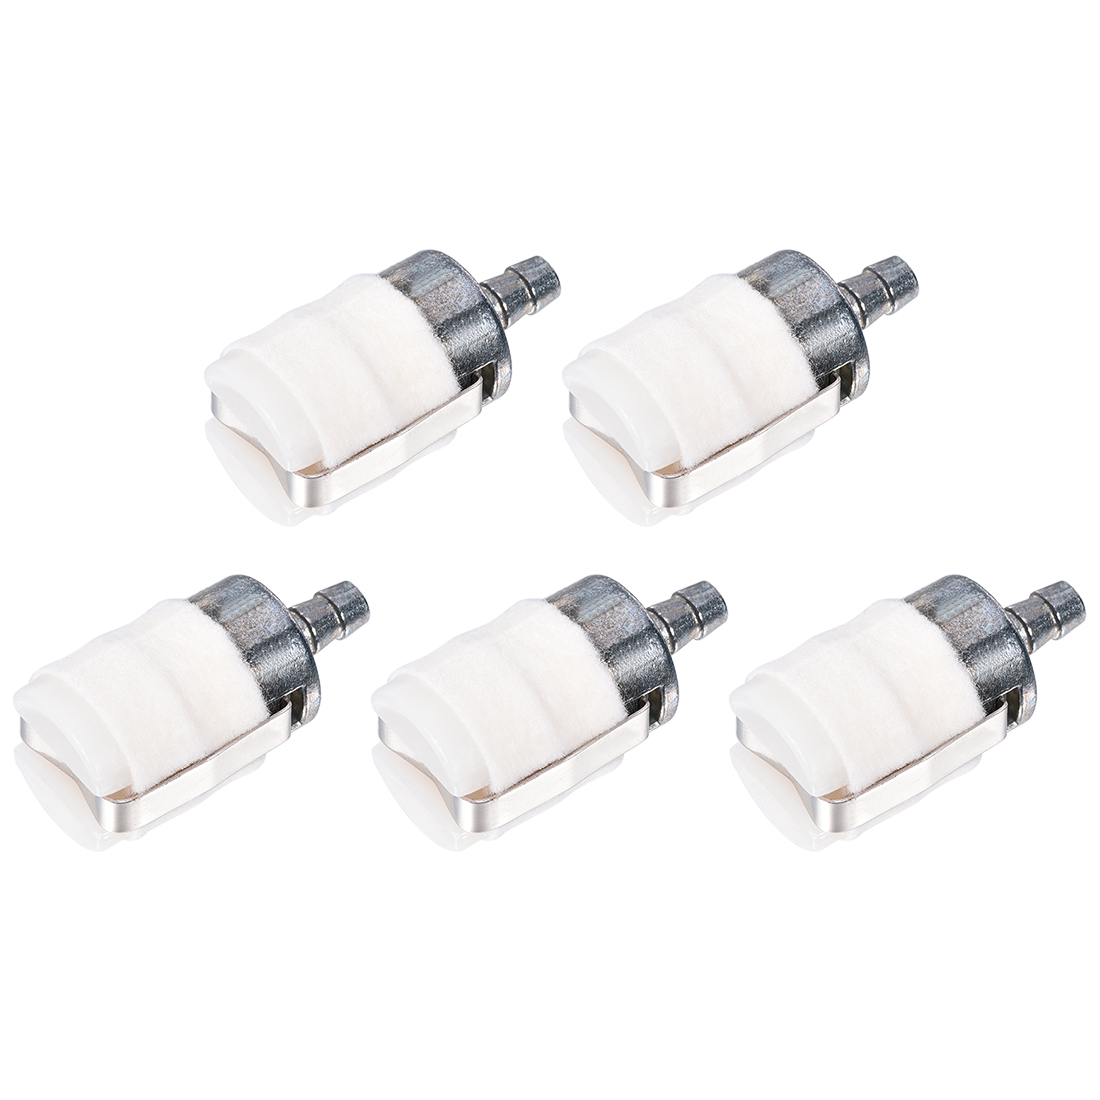 5pcs 125-528 Fuel Filter for Echo Backpack Blower PB650H and More